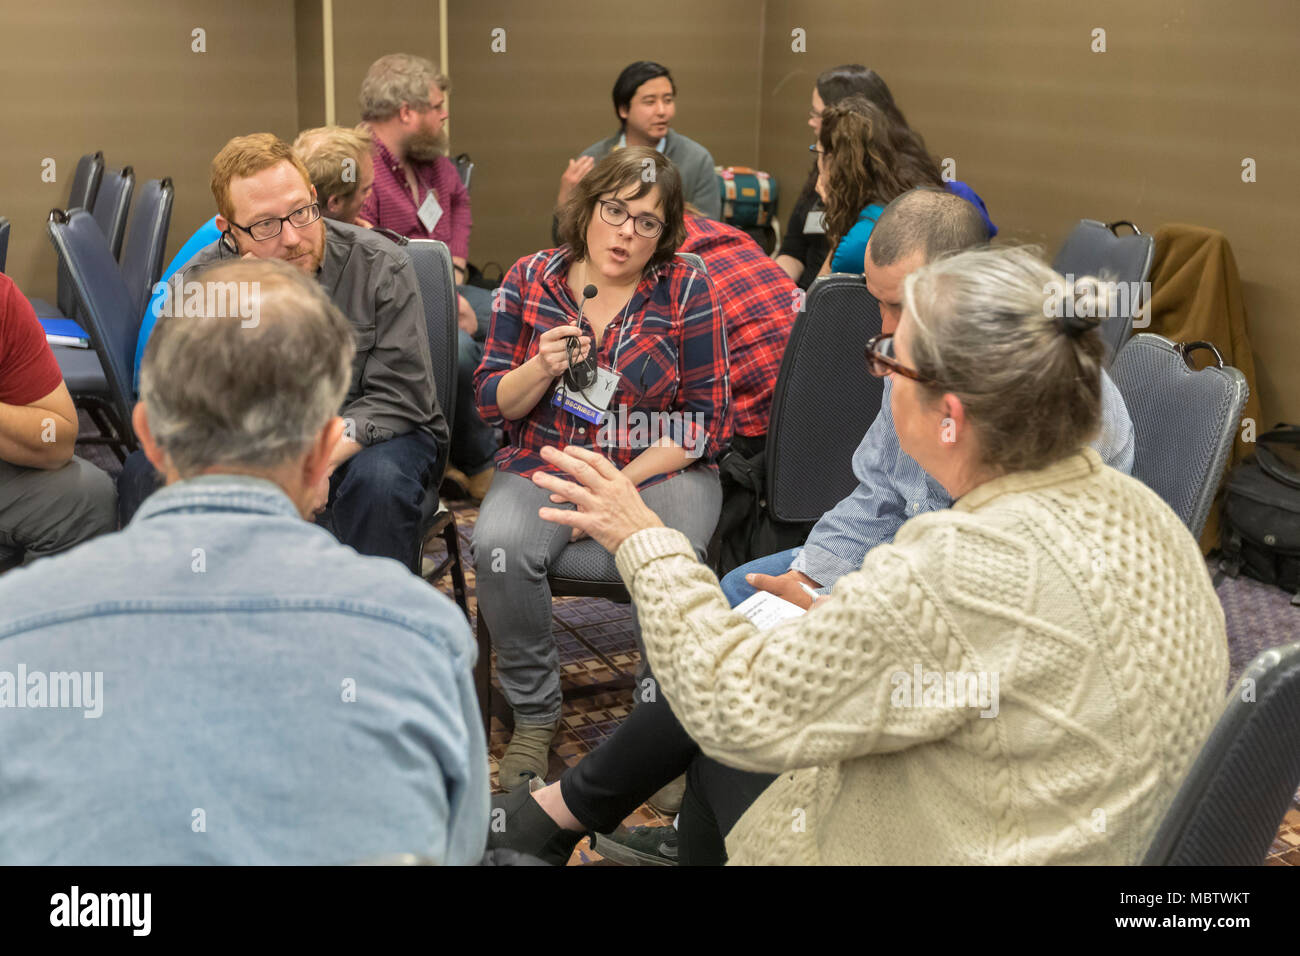 Chicago, Illinois - Johanna Parker translates from English to Spanish for Spanish speakers attending a workshop during biannual Labor Notes conference - Stock Image